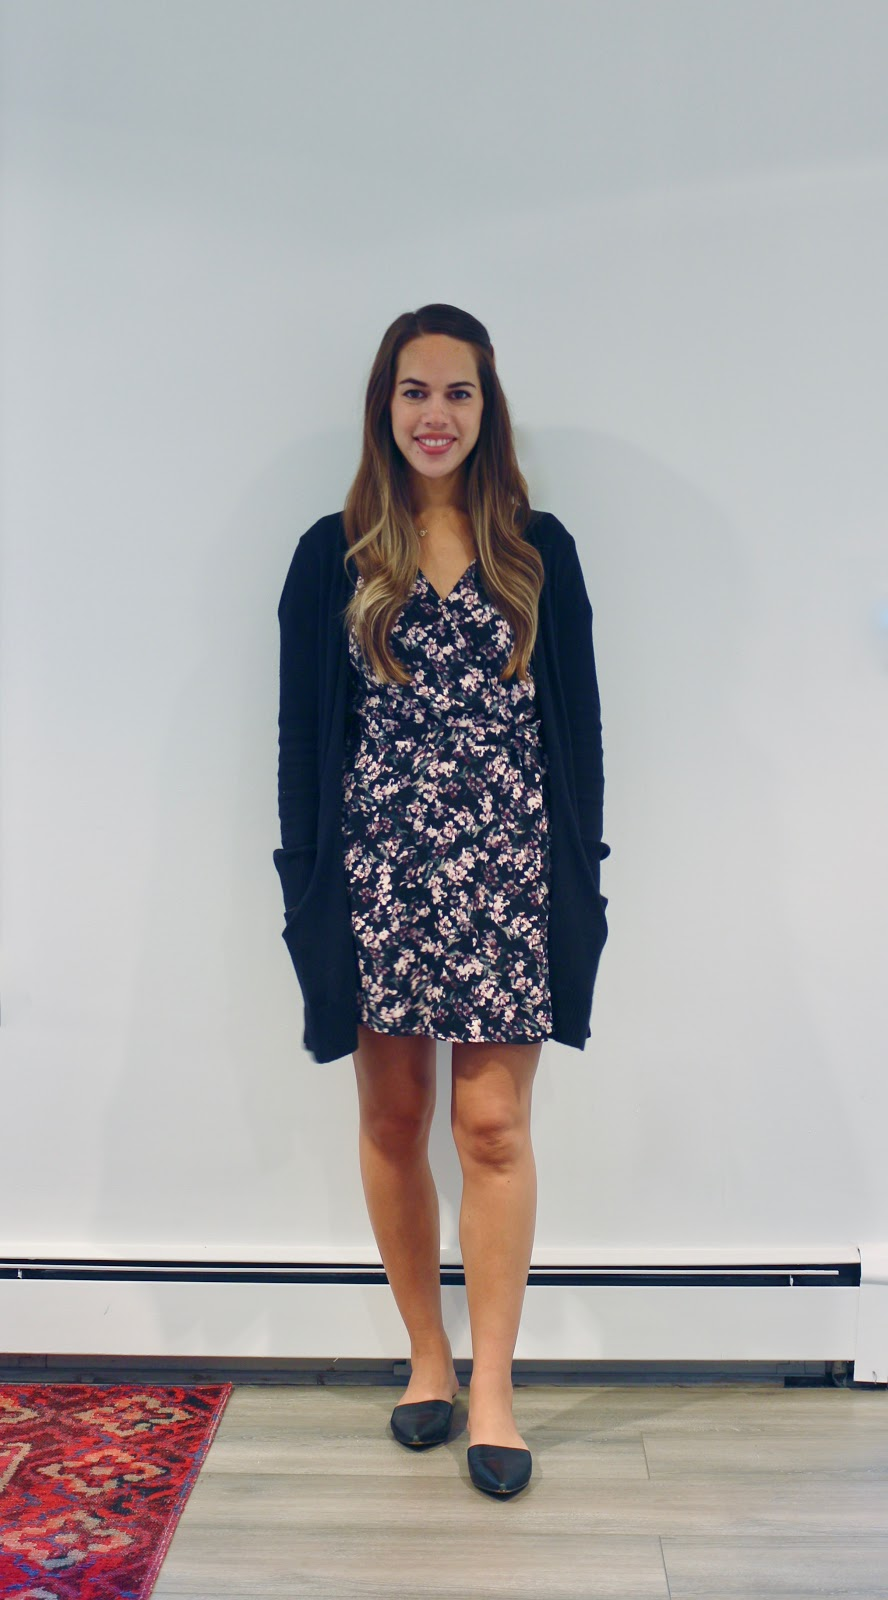 Jules in Flats - Floral Wrap Dress with Cardigan (Business Casual Workwear on a Budget)